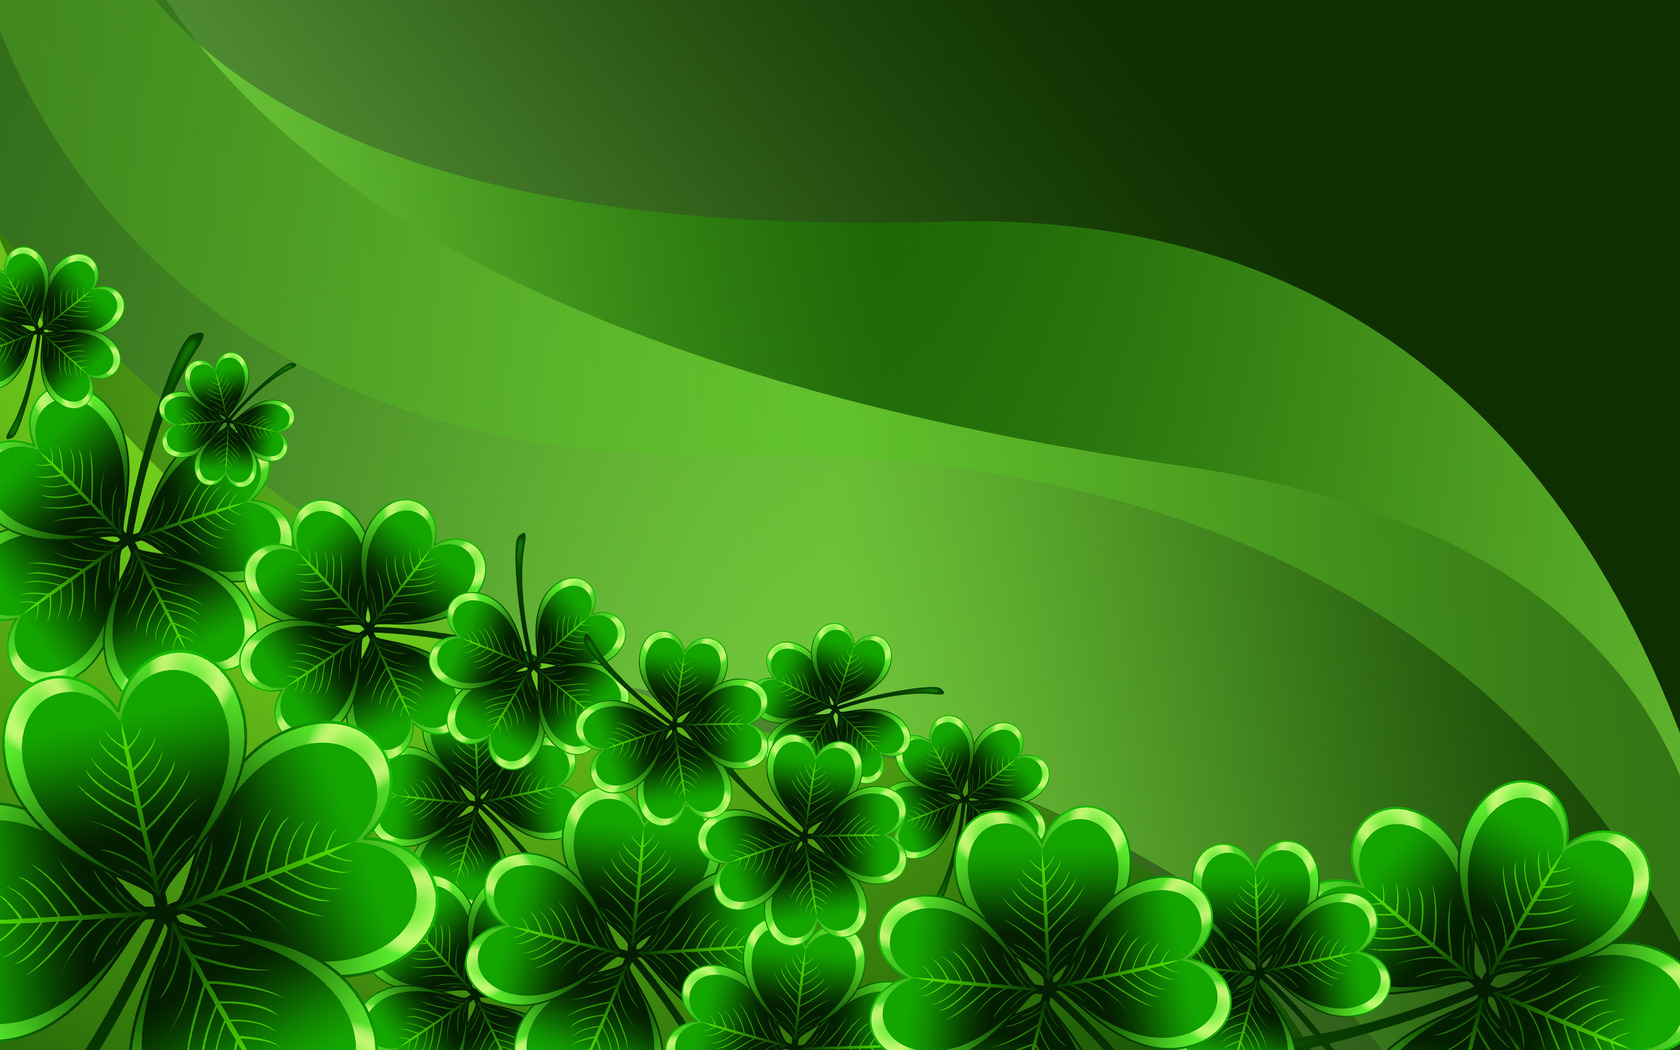 Shamrock Wallpaper Free Wallpapersafari